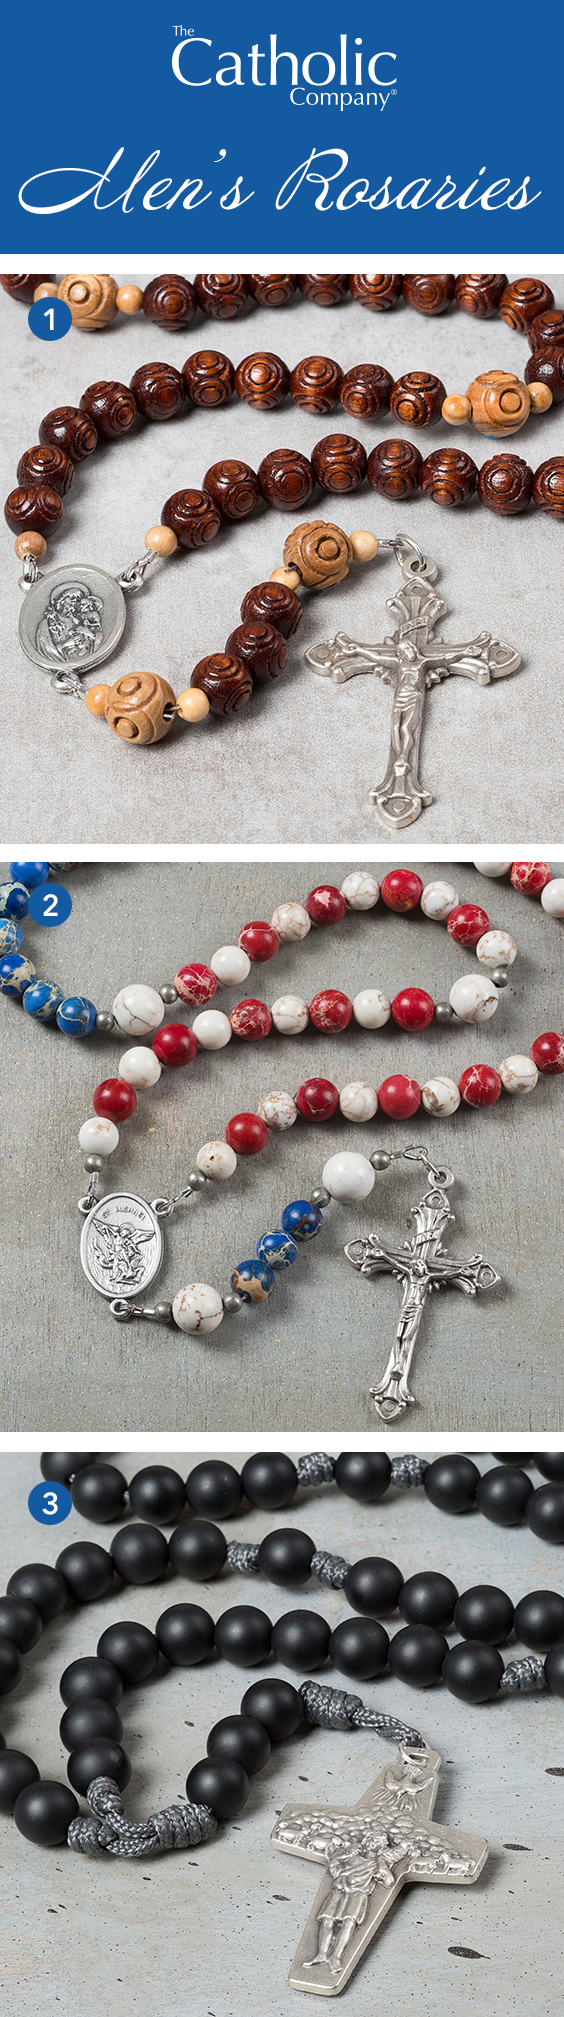 Makes a great gift for the special men in your life rosaries